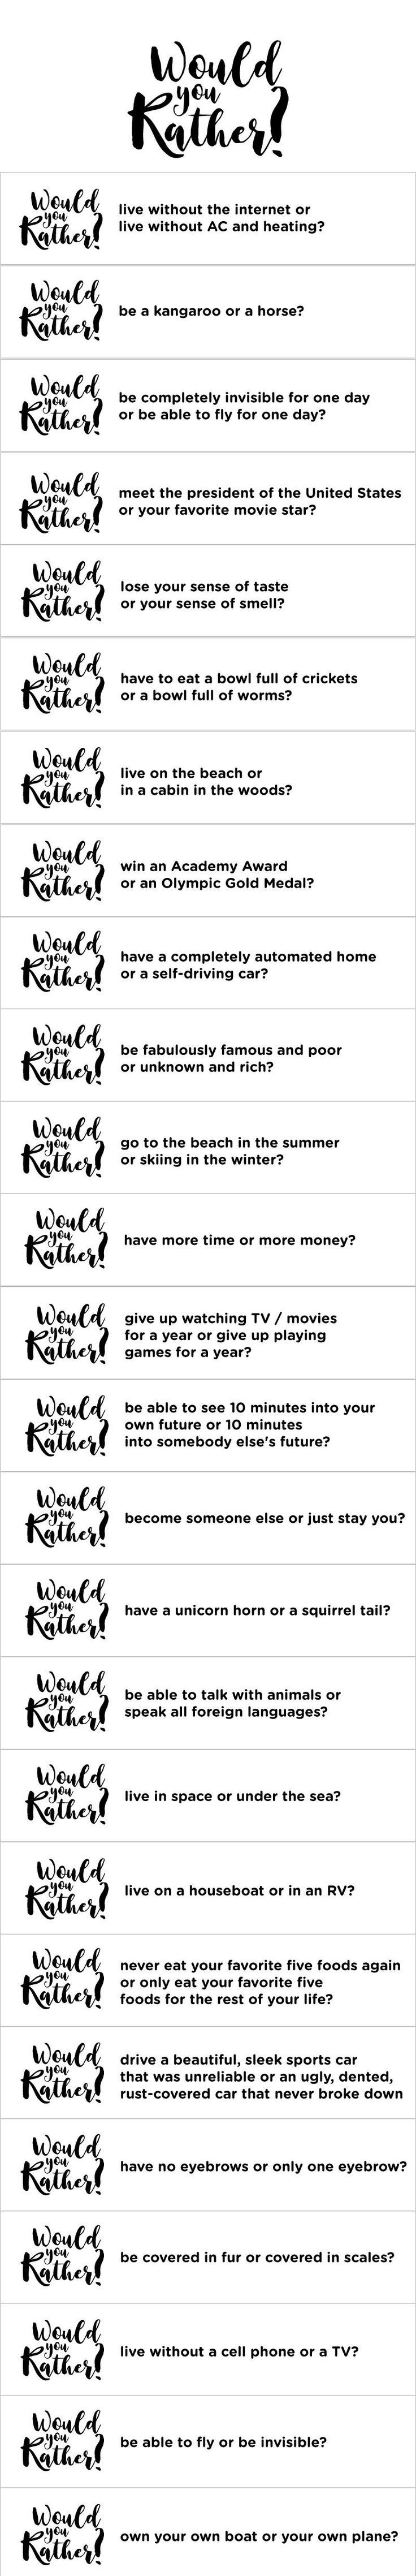 Would you rather questions for online dating